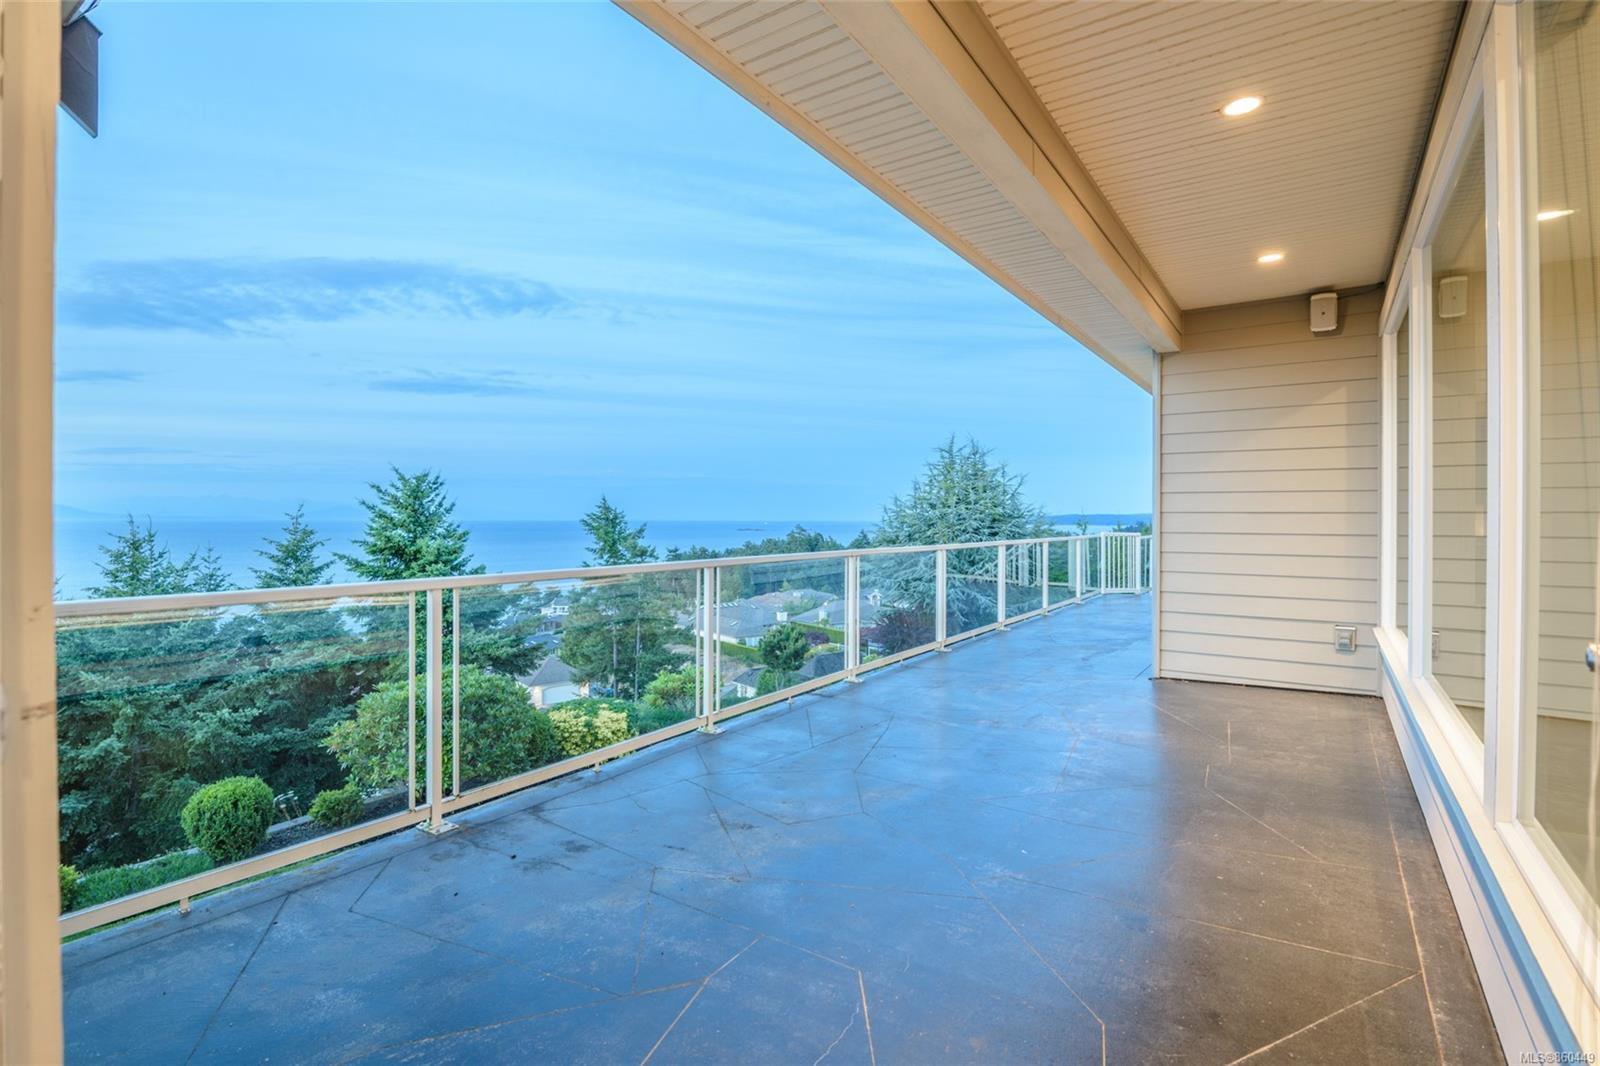 Photo 45: Photos: 5019 Hinrich View in : Na North Nanaimo House for sale (Nanaimo)  : MLS®# 860449